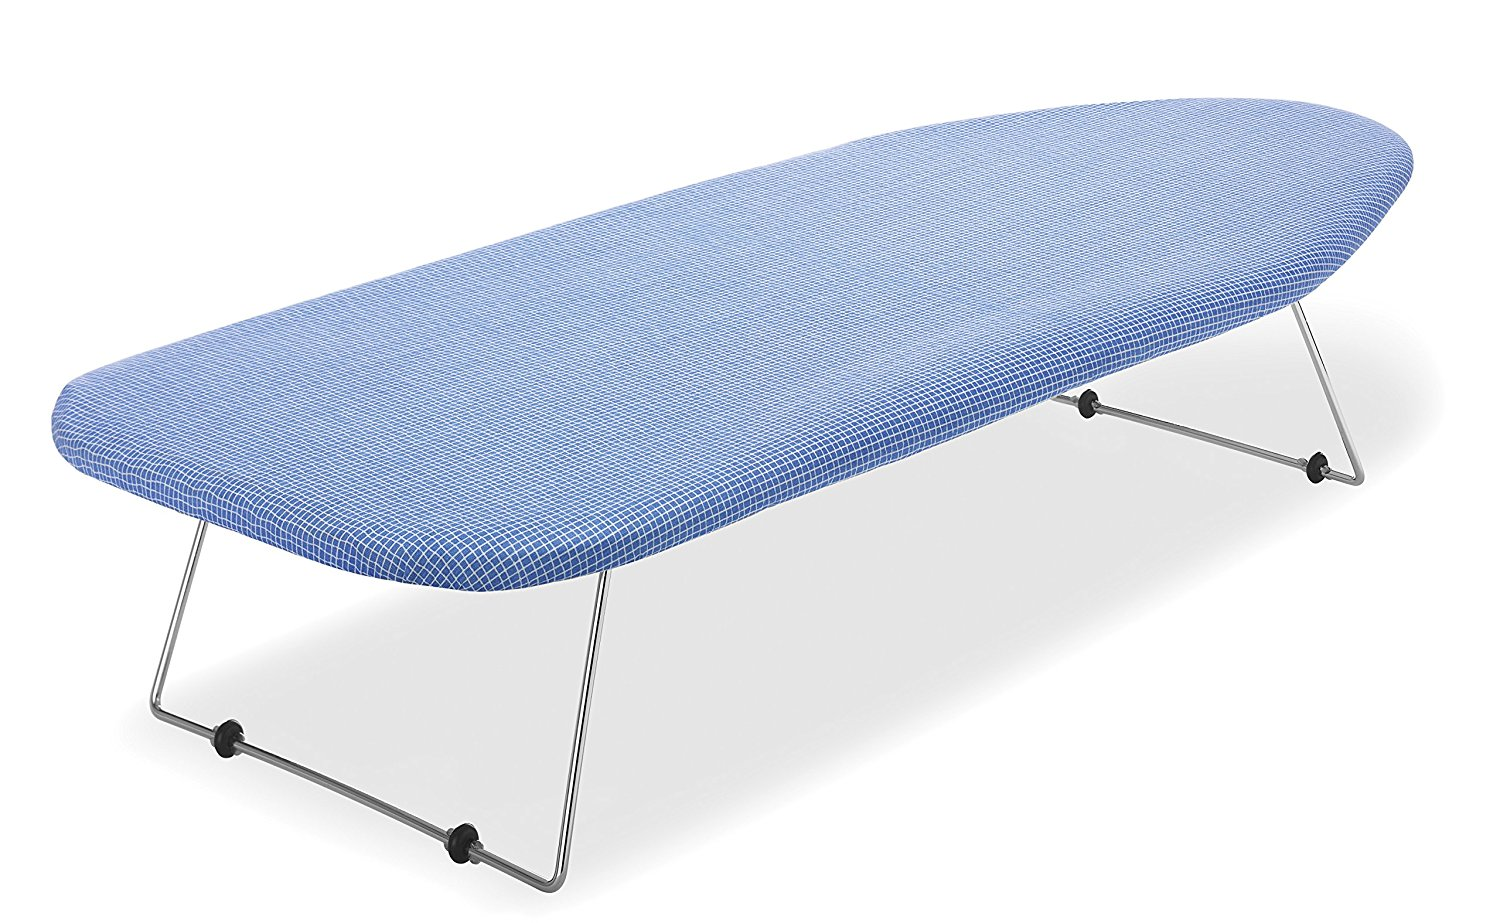 ironing board large with Scorch Resistant Cover